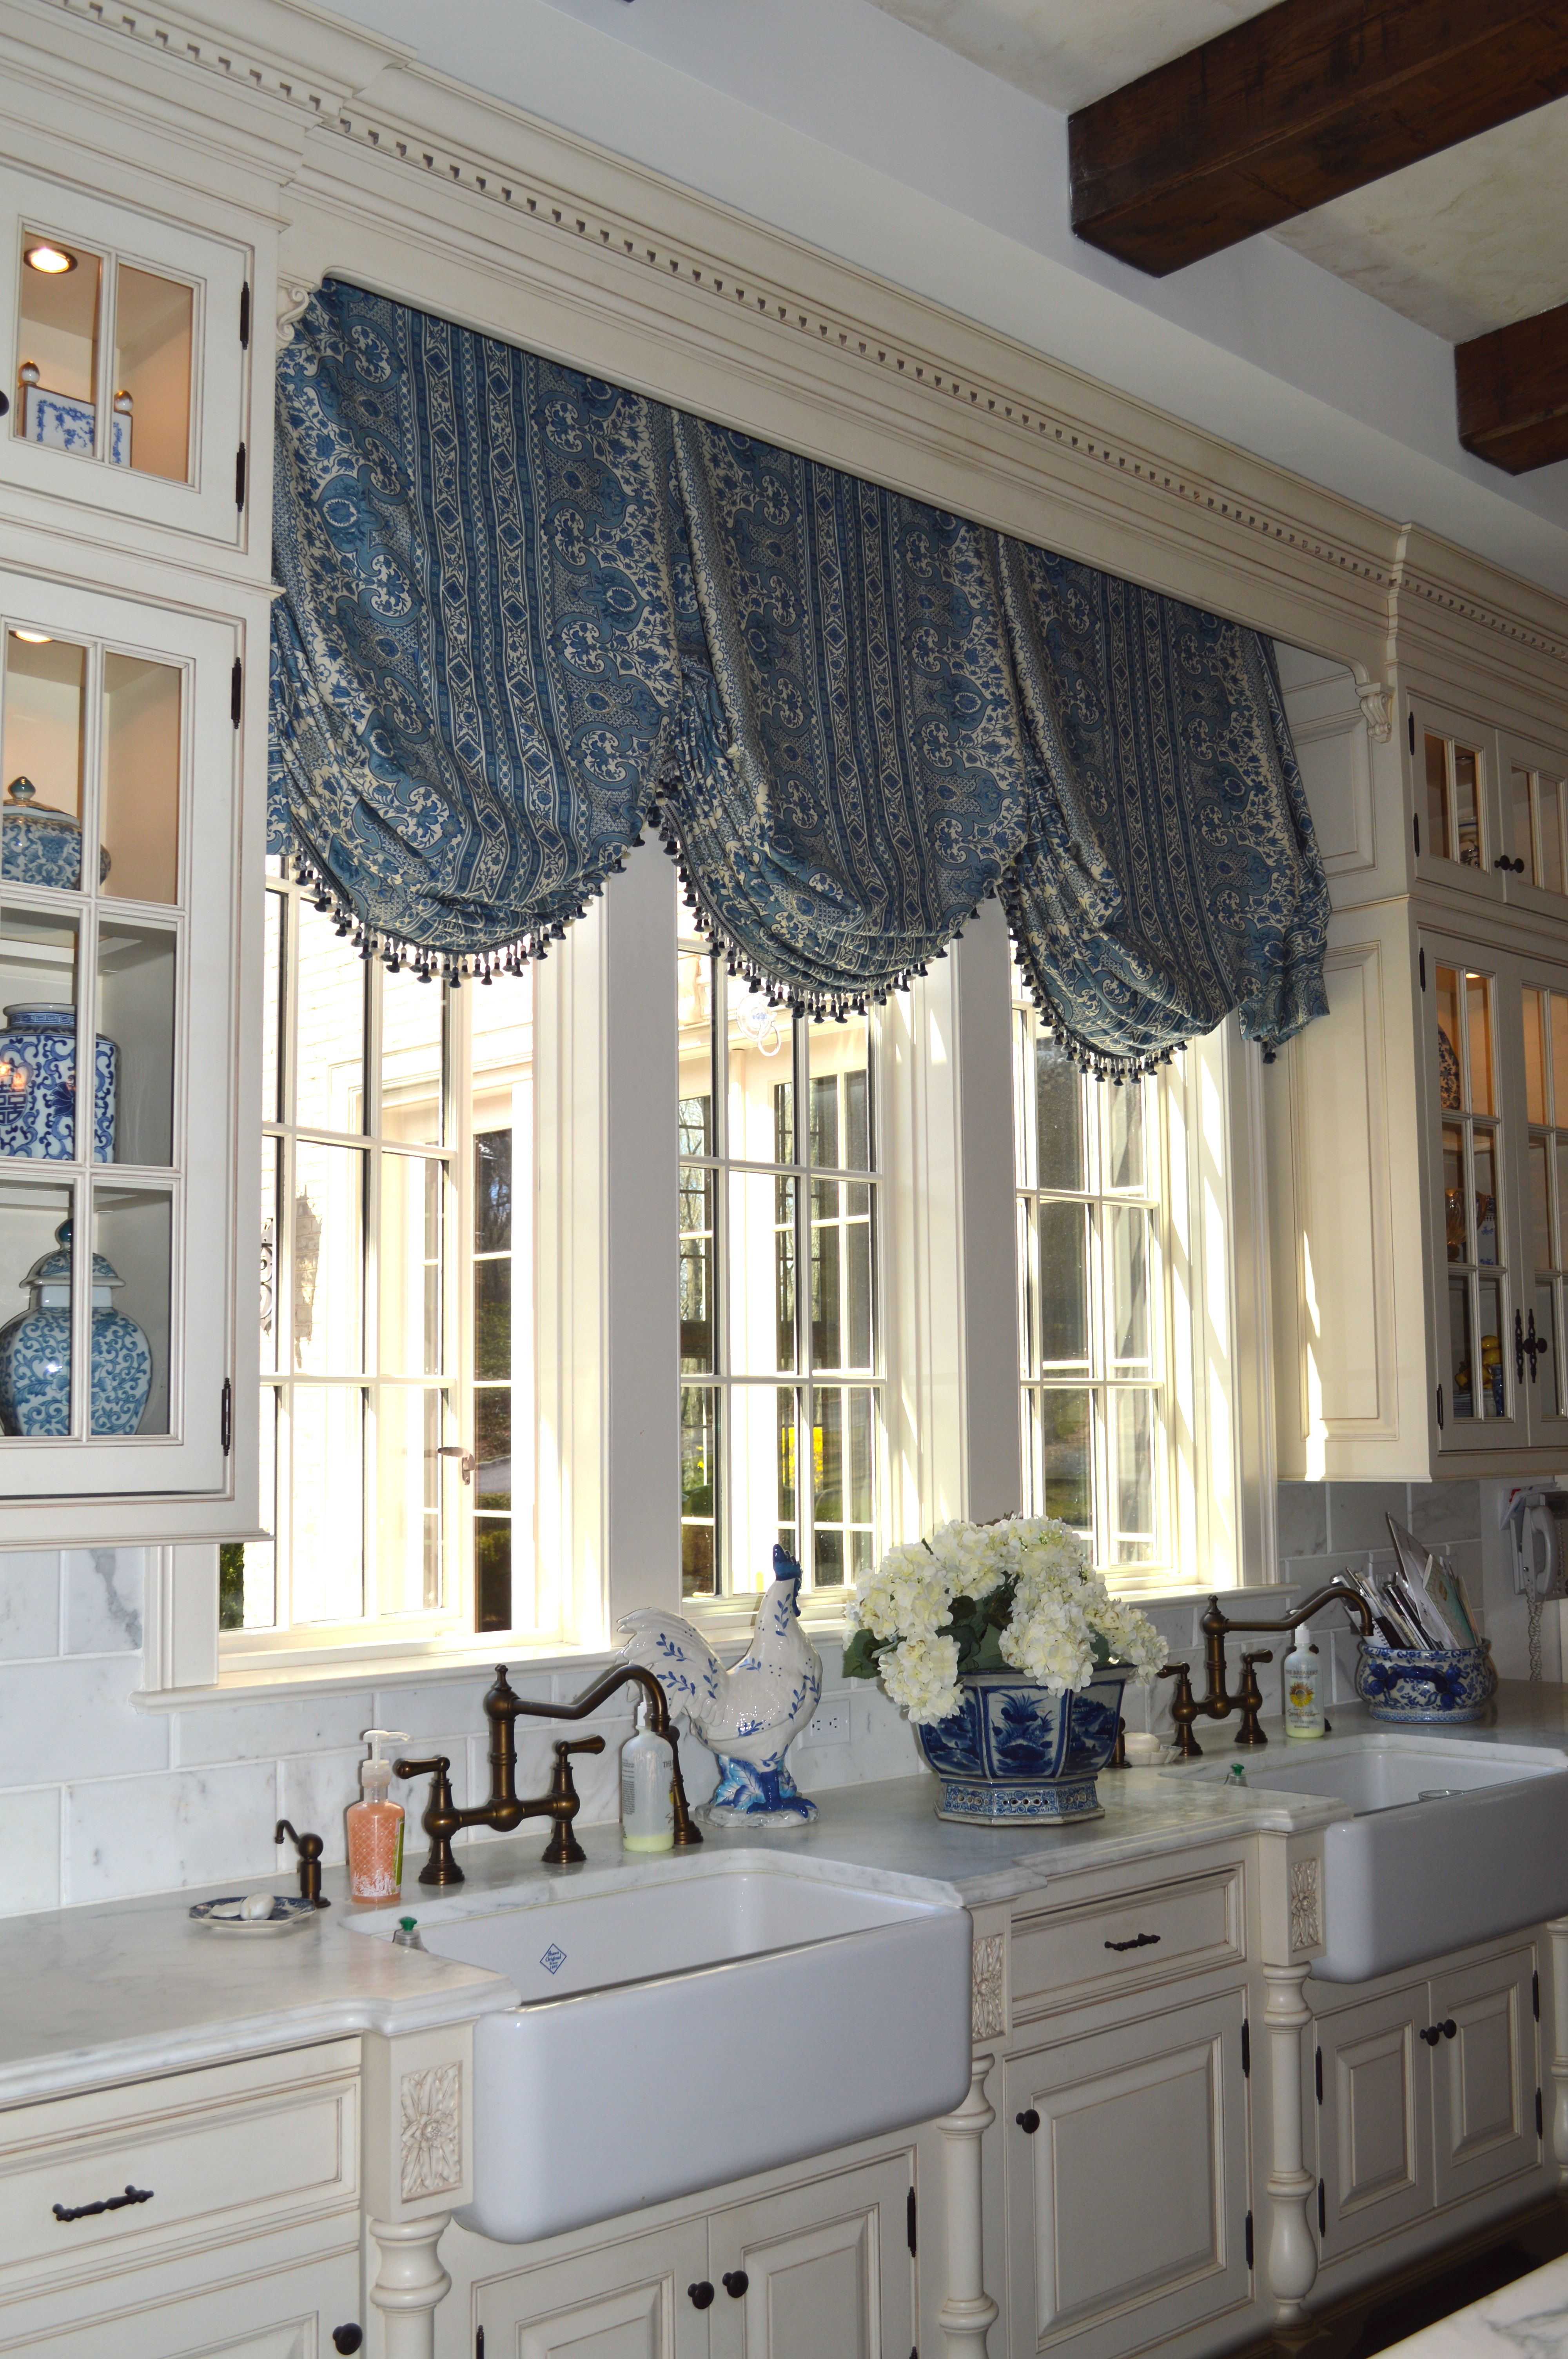 Window for kitchen  the enchanted home  delft blueuwhite  pinterest  window